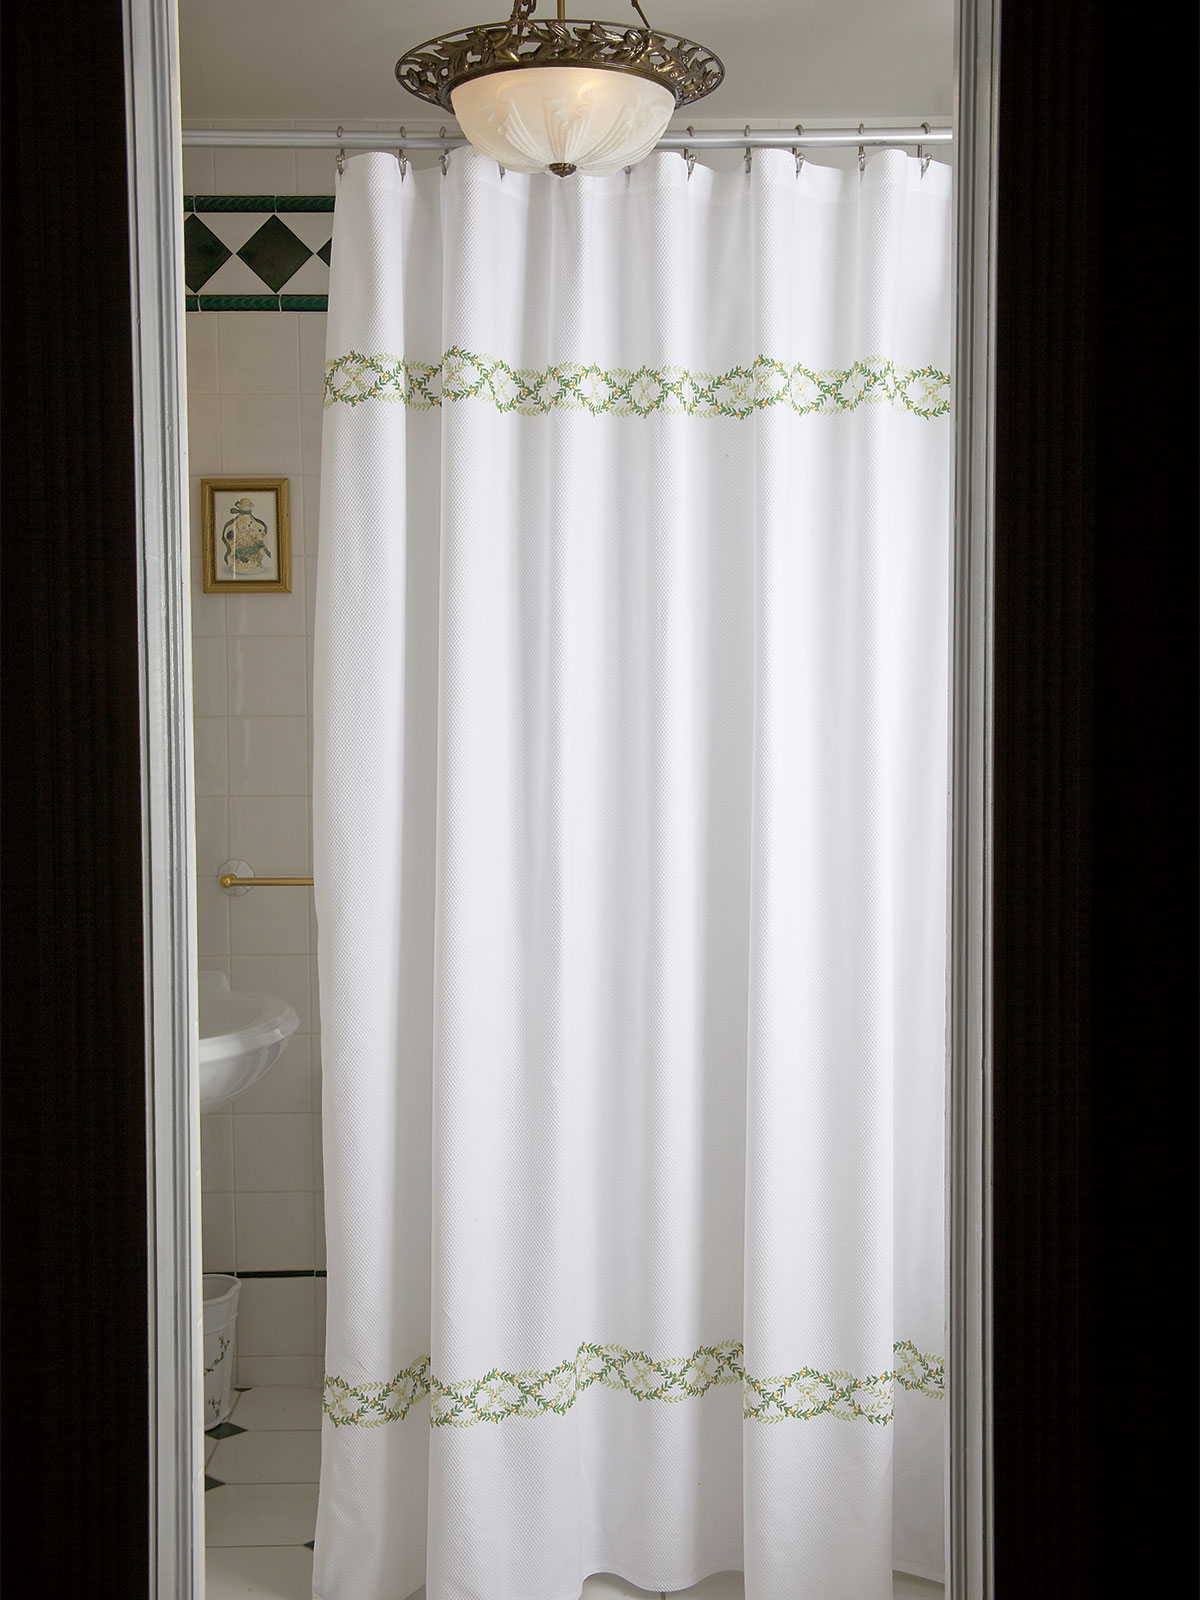 Luxury white shower curtain - Arden_curtain_1568 Jpg